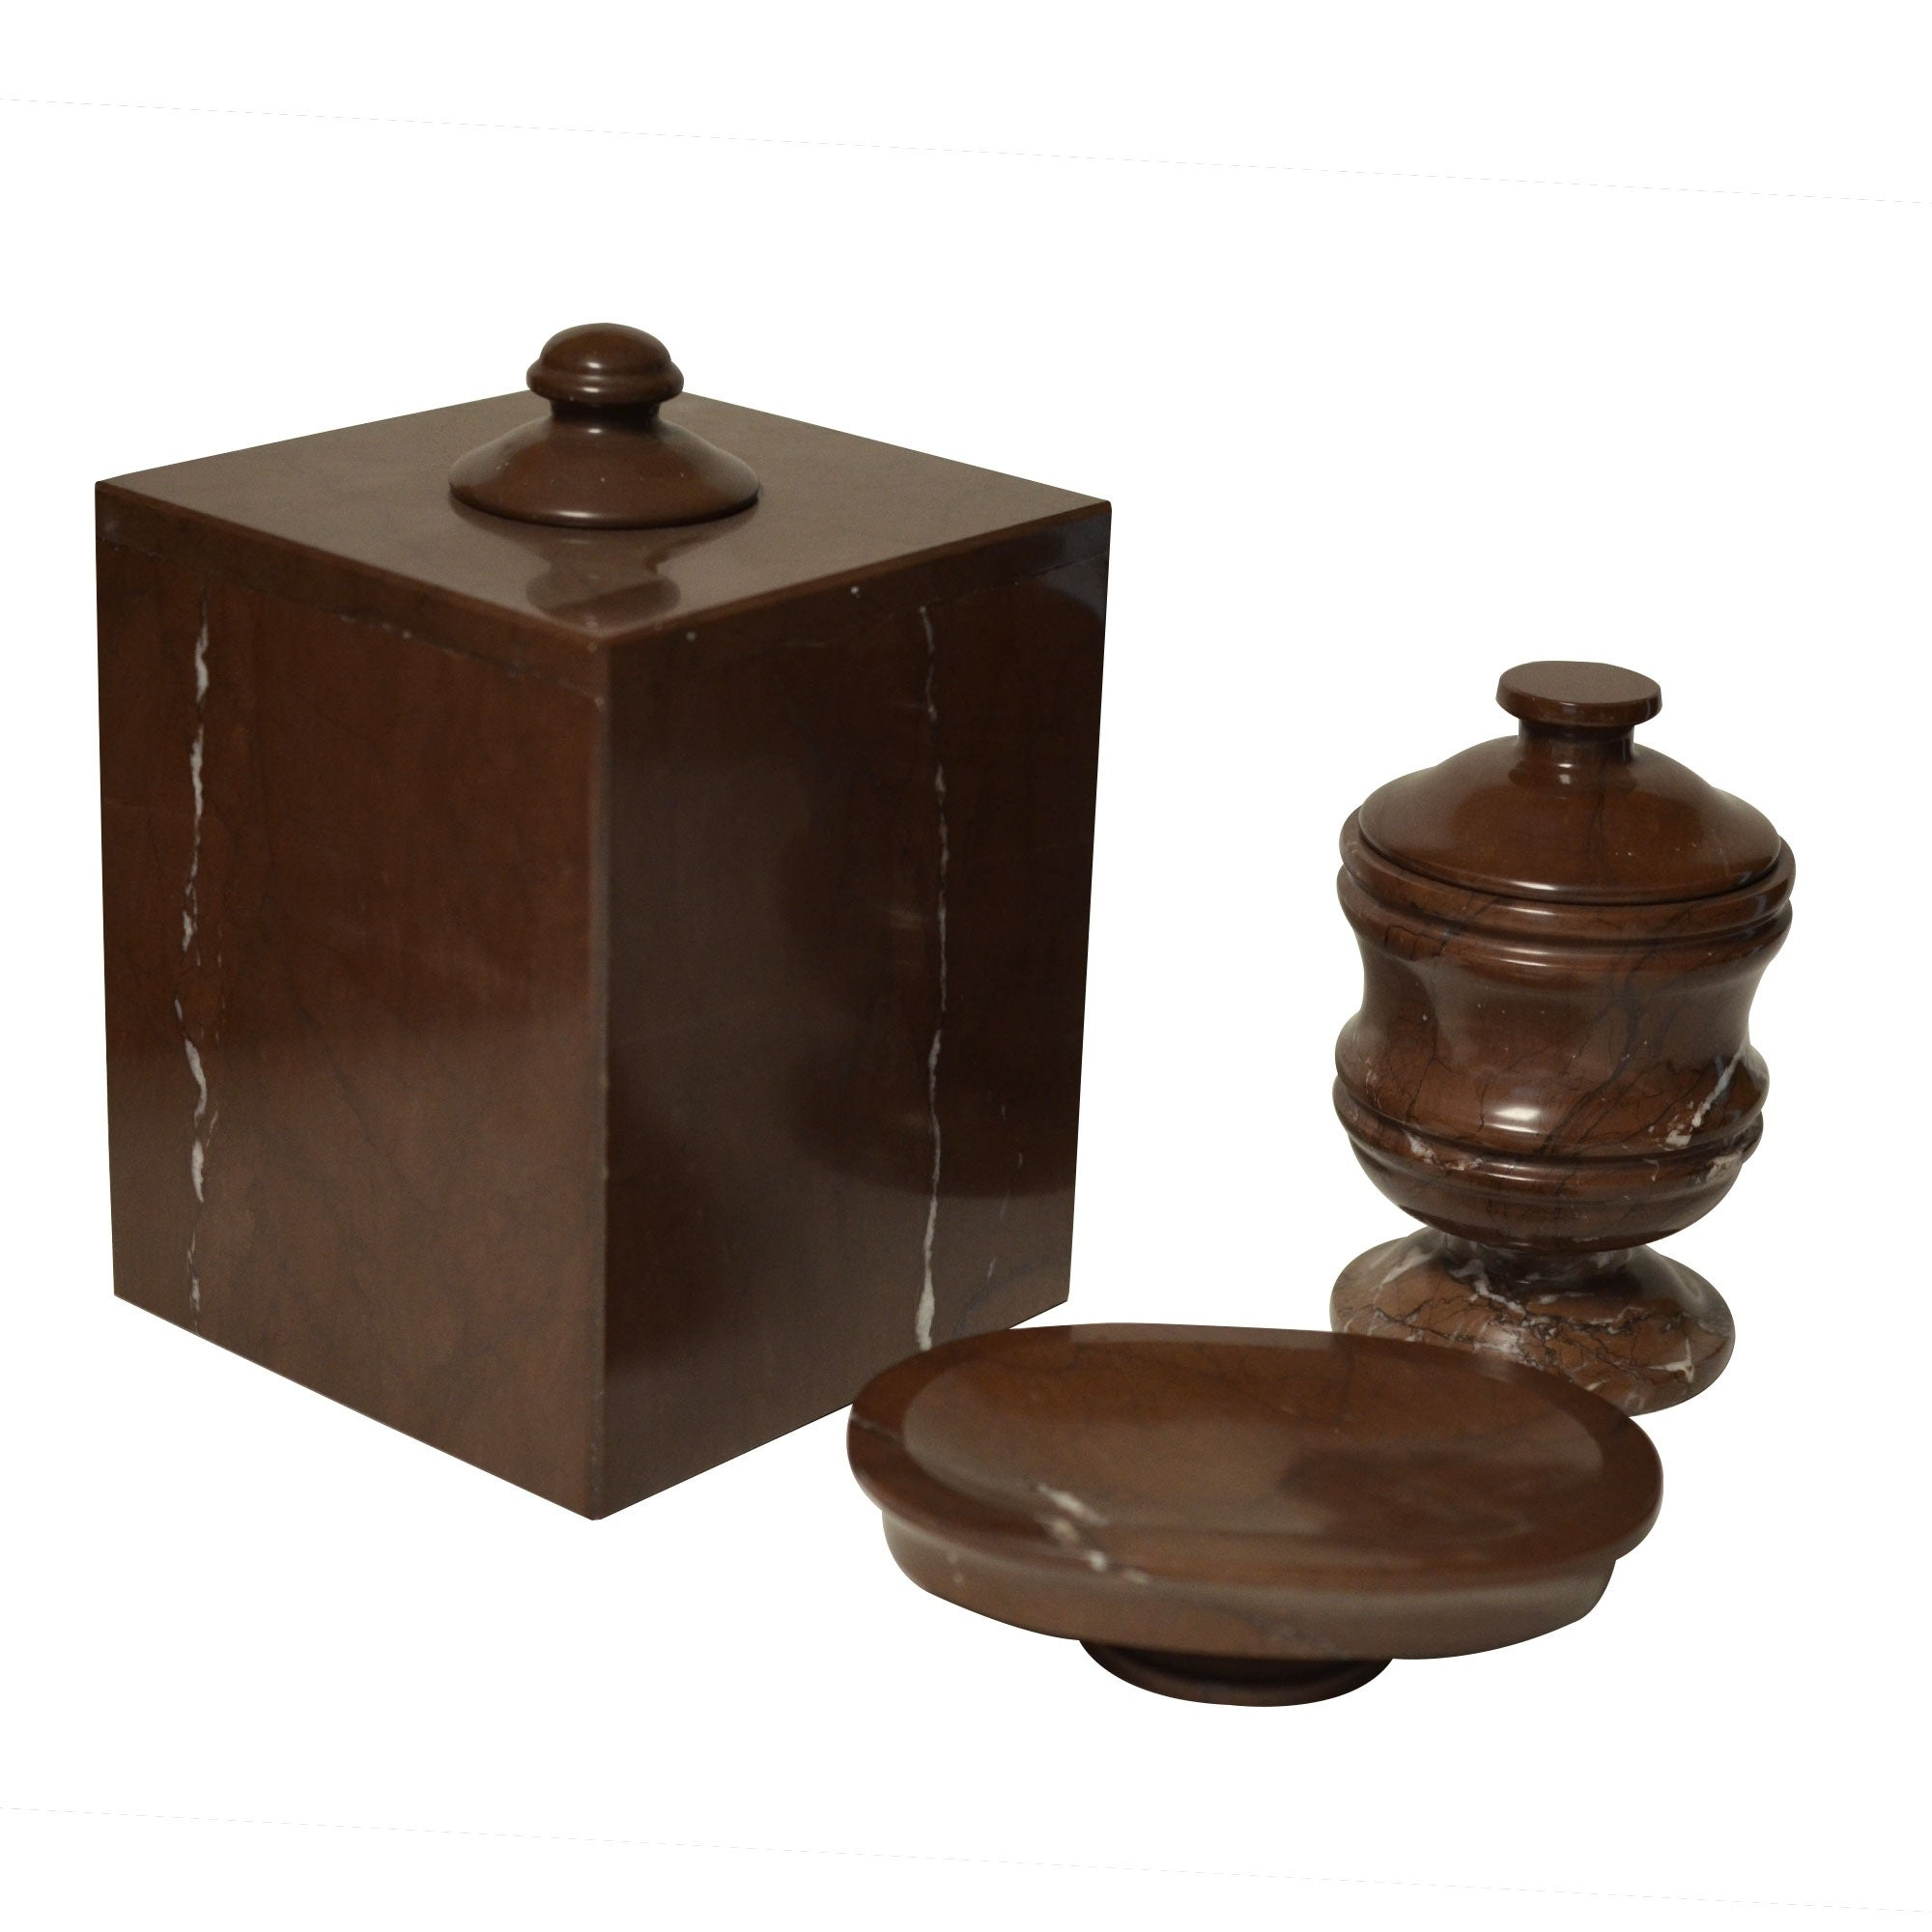 Chocolate Shower and Bathroom Accessory Polished Marble Tissue Box Cover